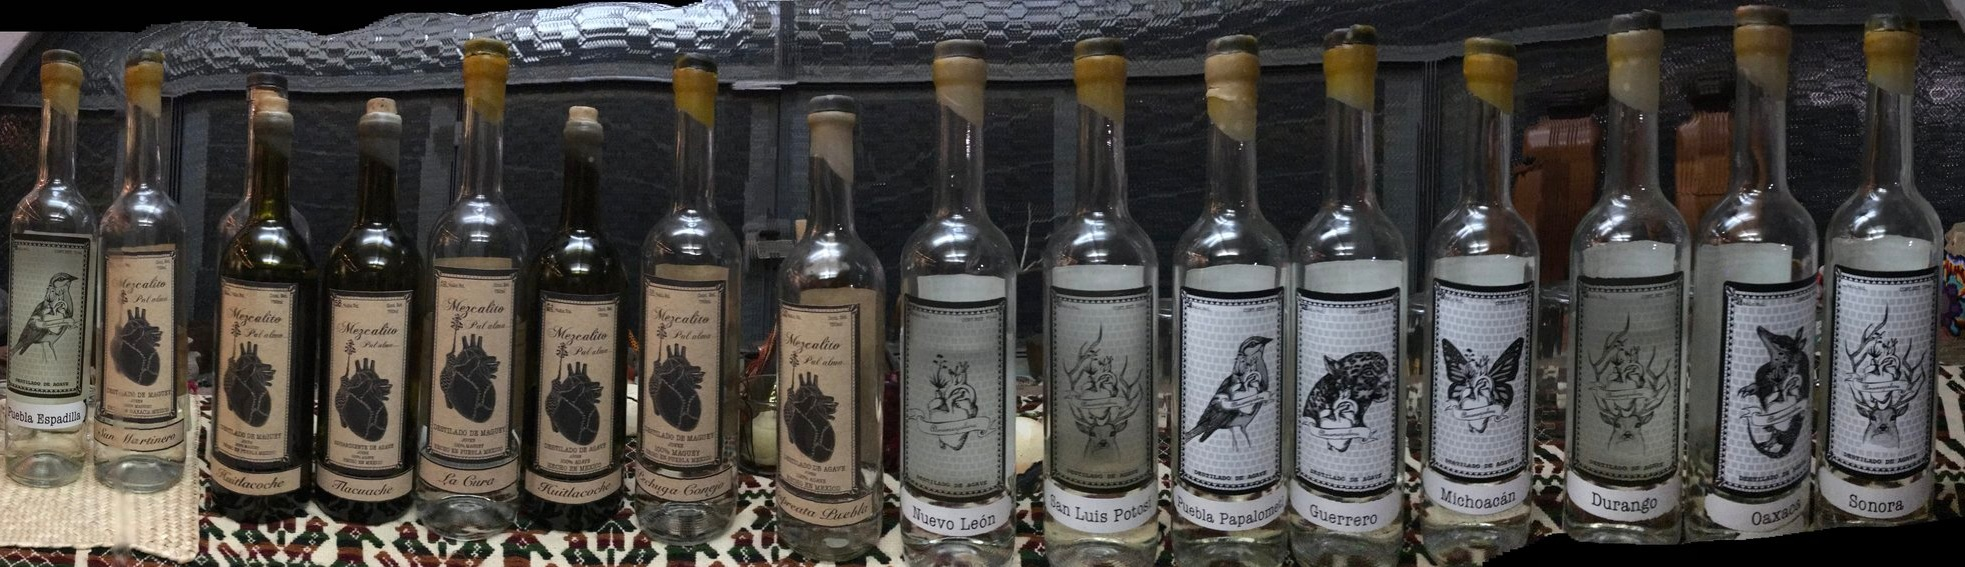 Some of the innumerable varieties of mezcal by Almamezcalera in Mexico City.